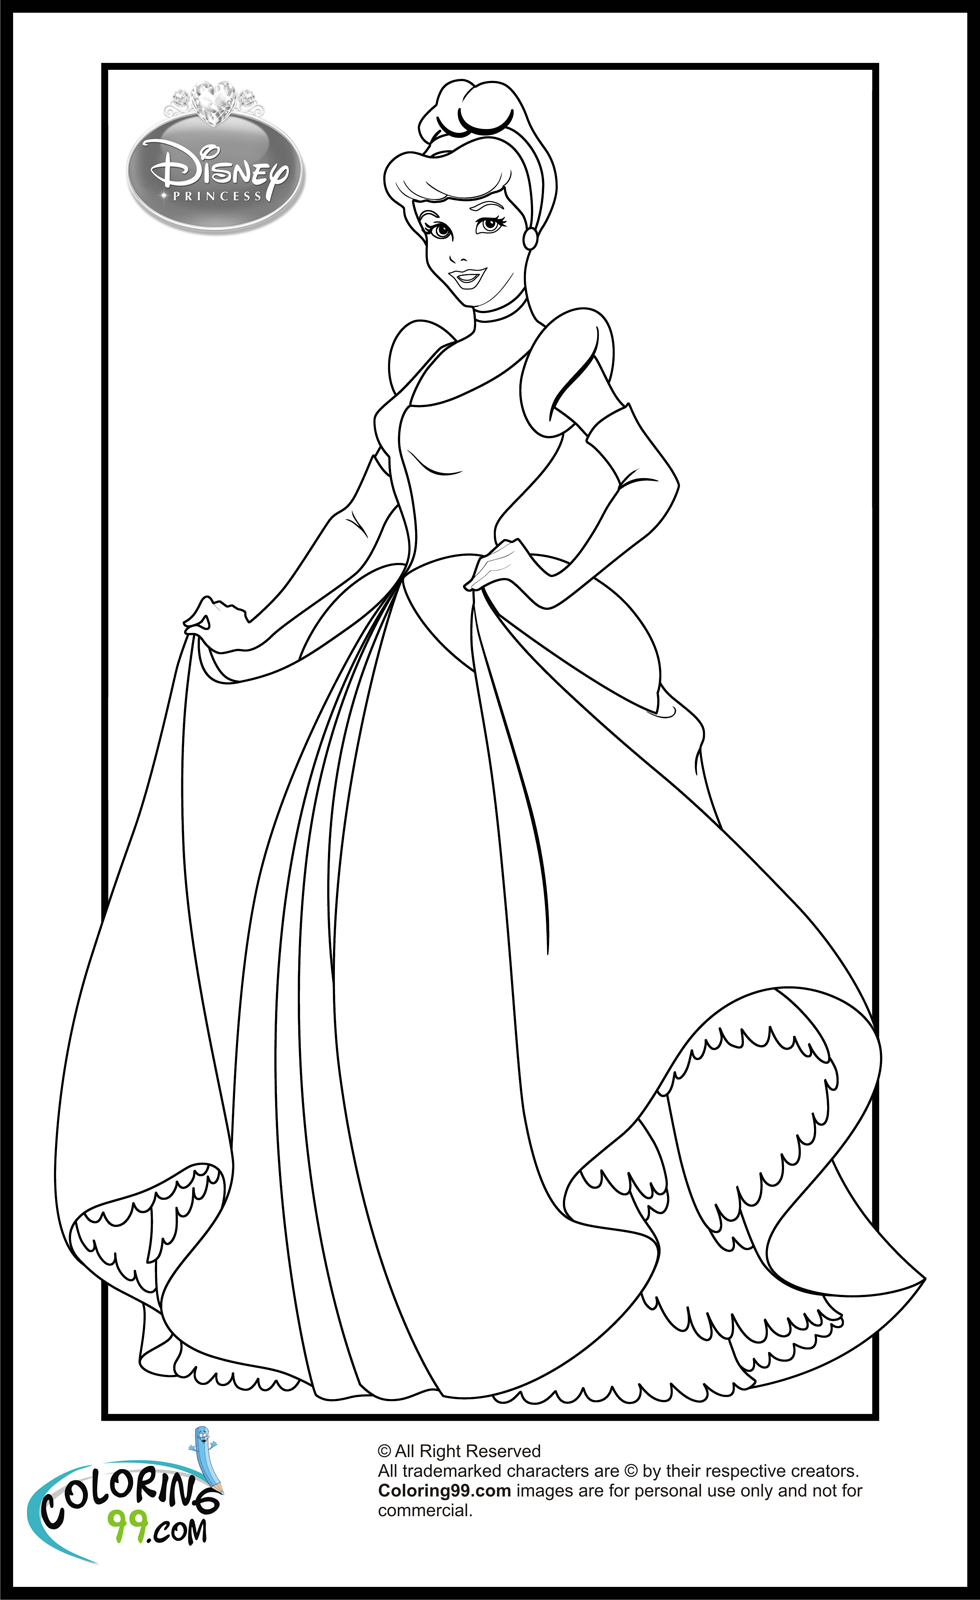 colouring pages for disney princesses disney princess belle coloring pages disney for princesses pages colouring